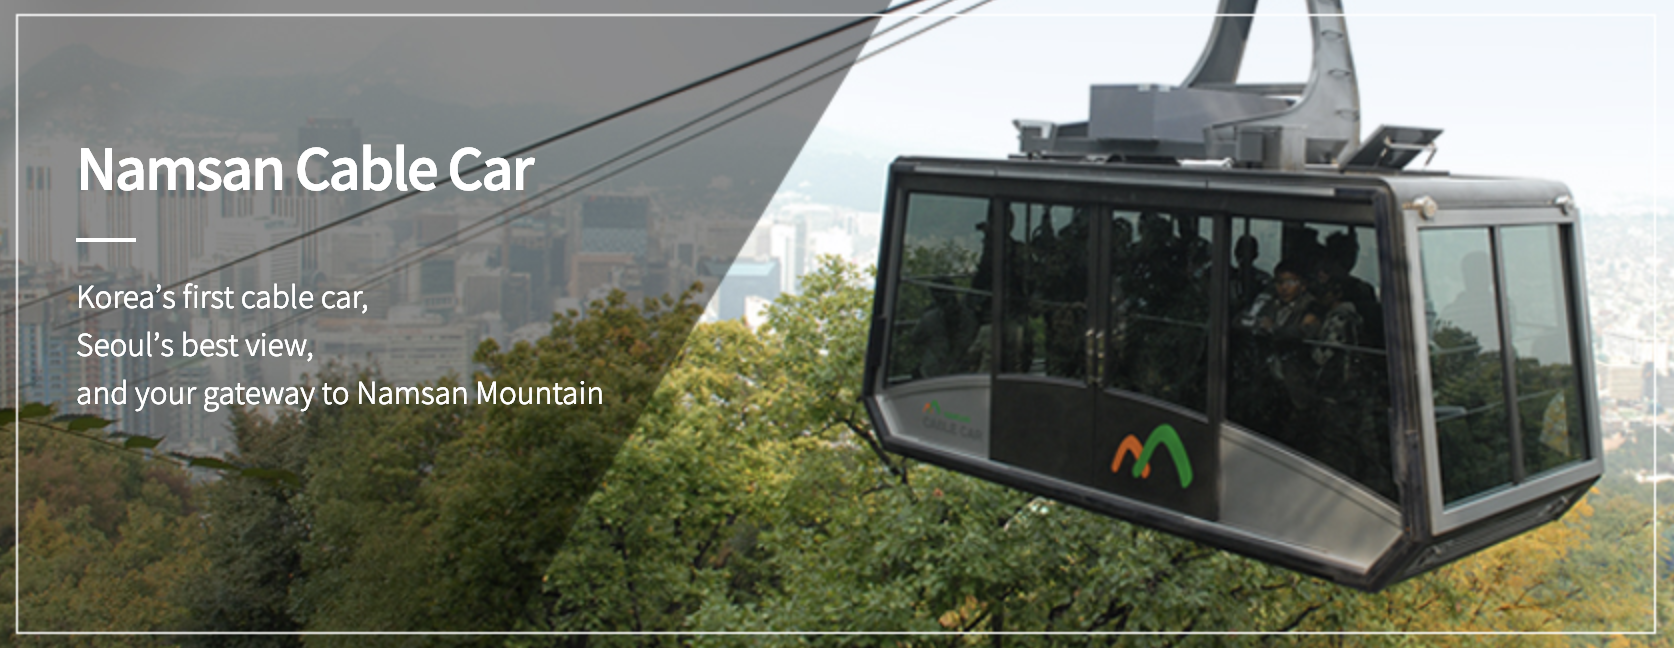 Image credit:  Namsan Cable Car website